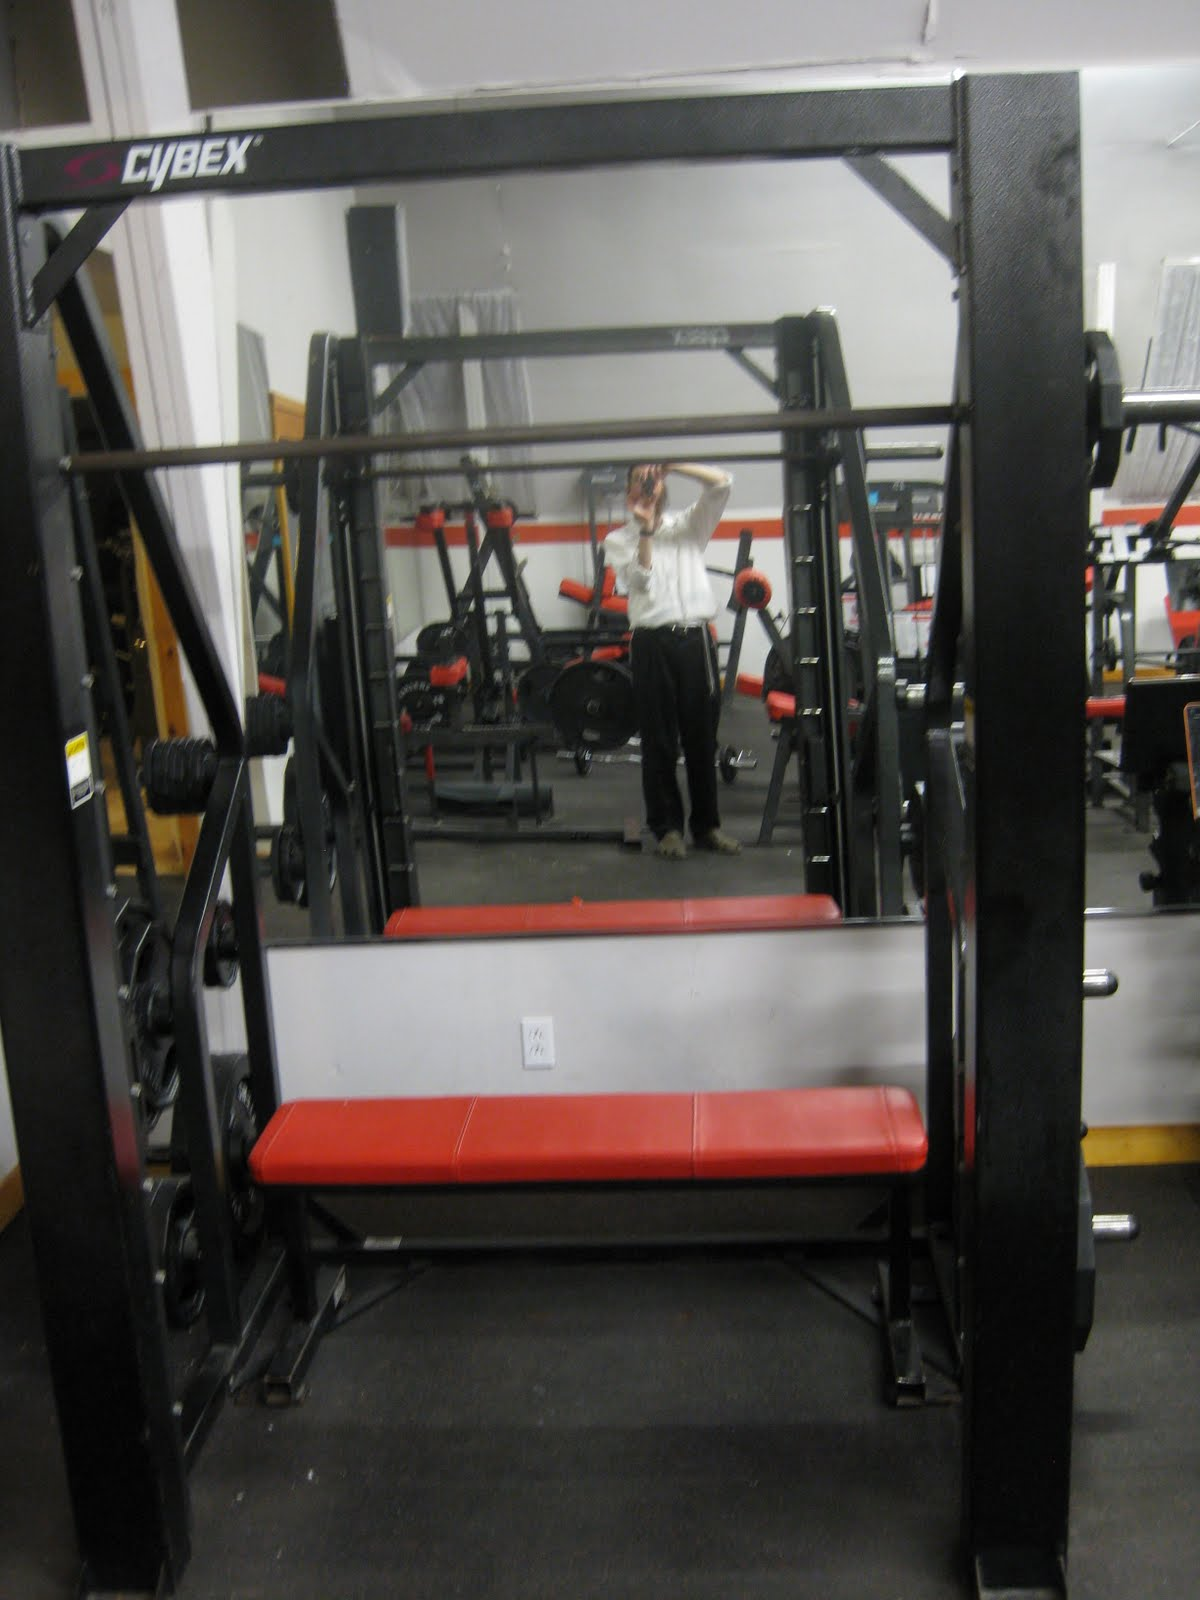 cybex smith machine for sale